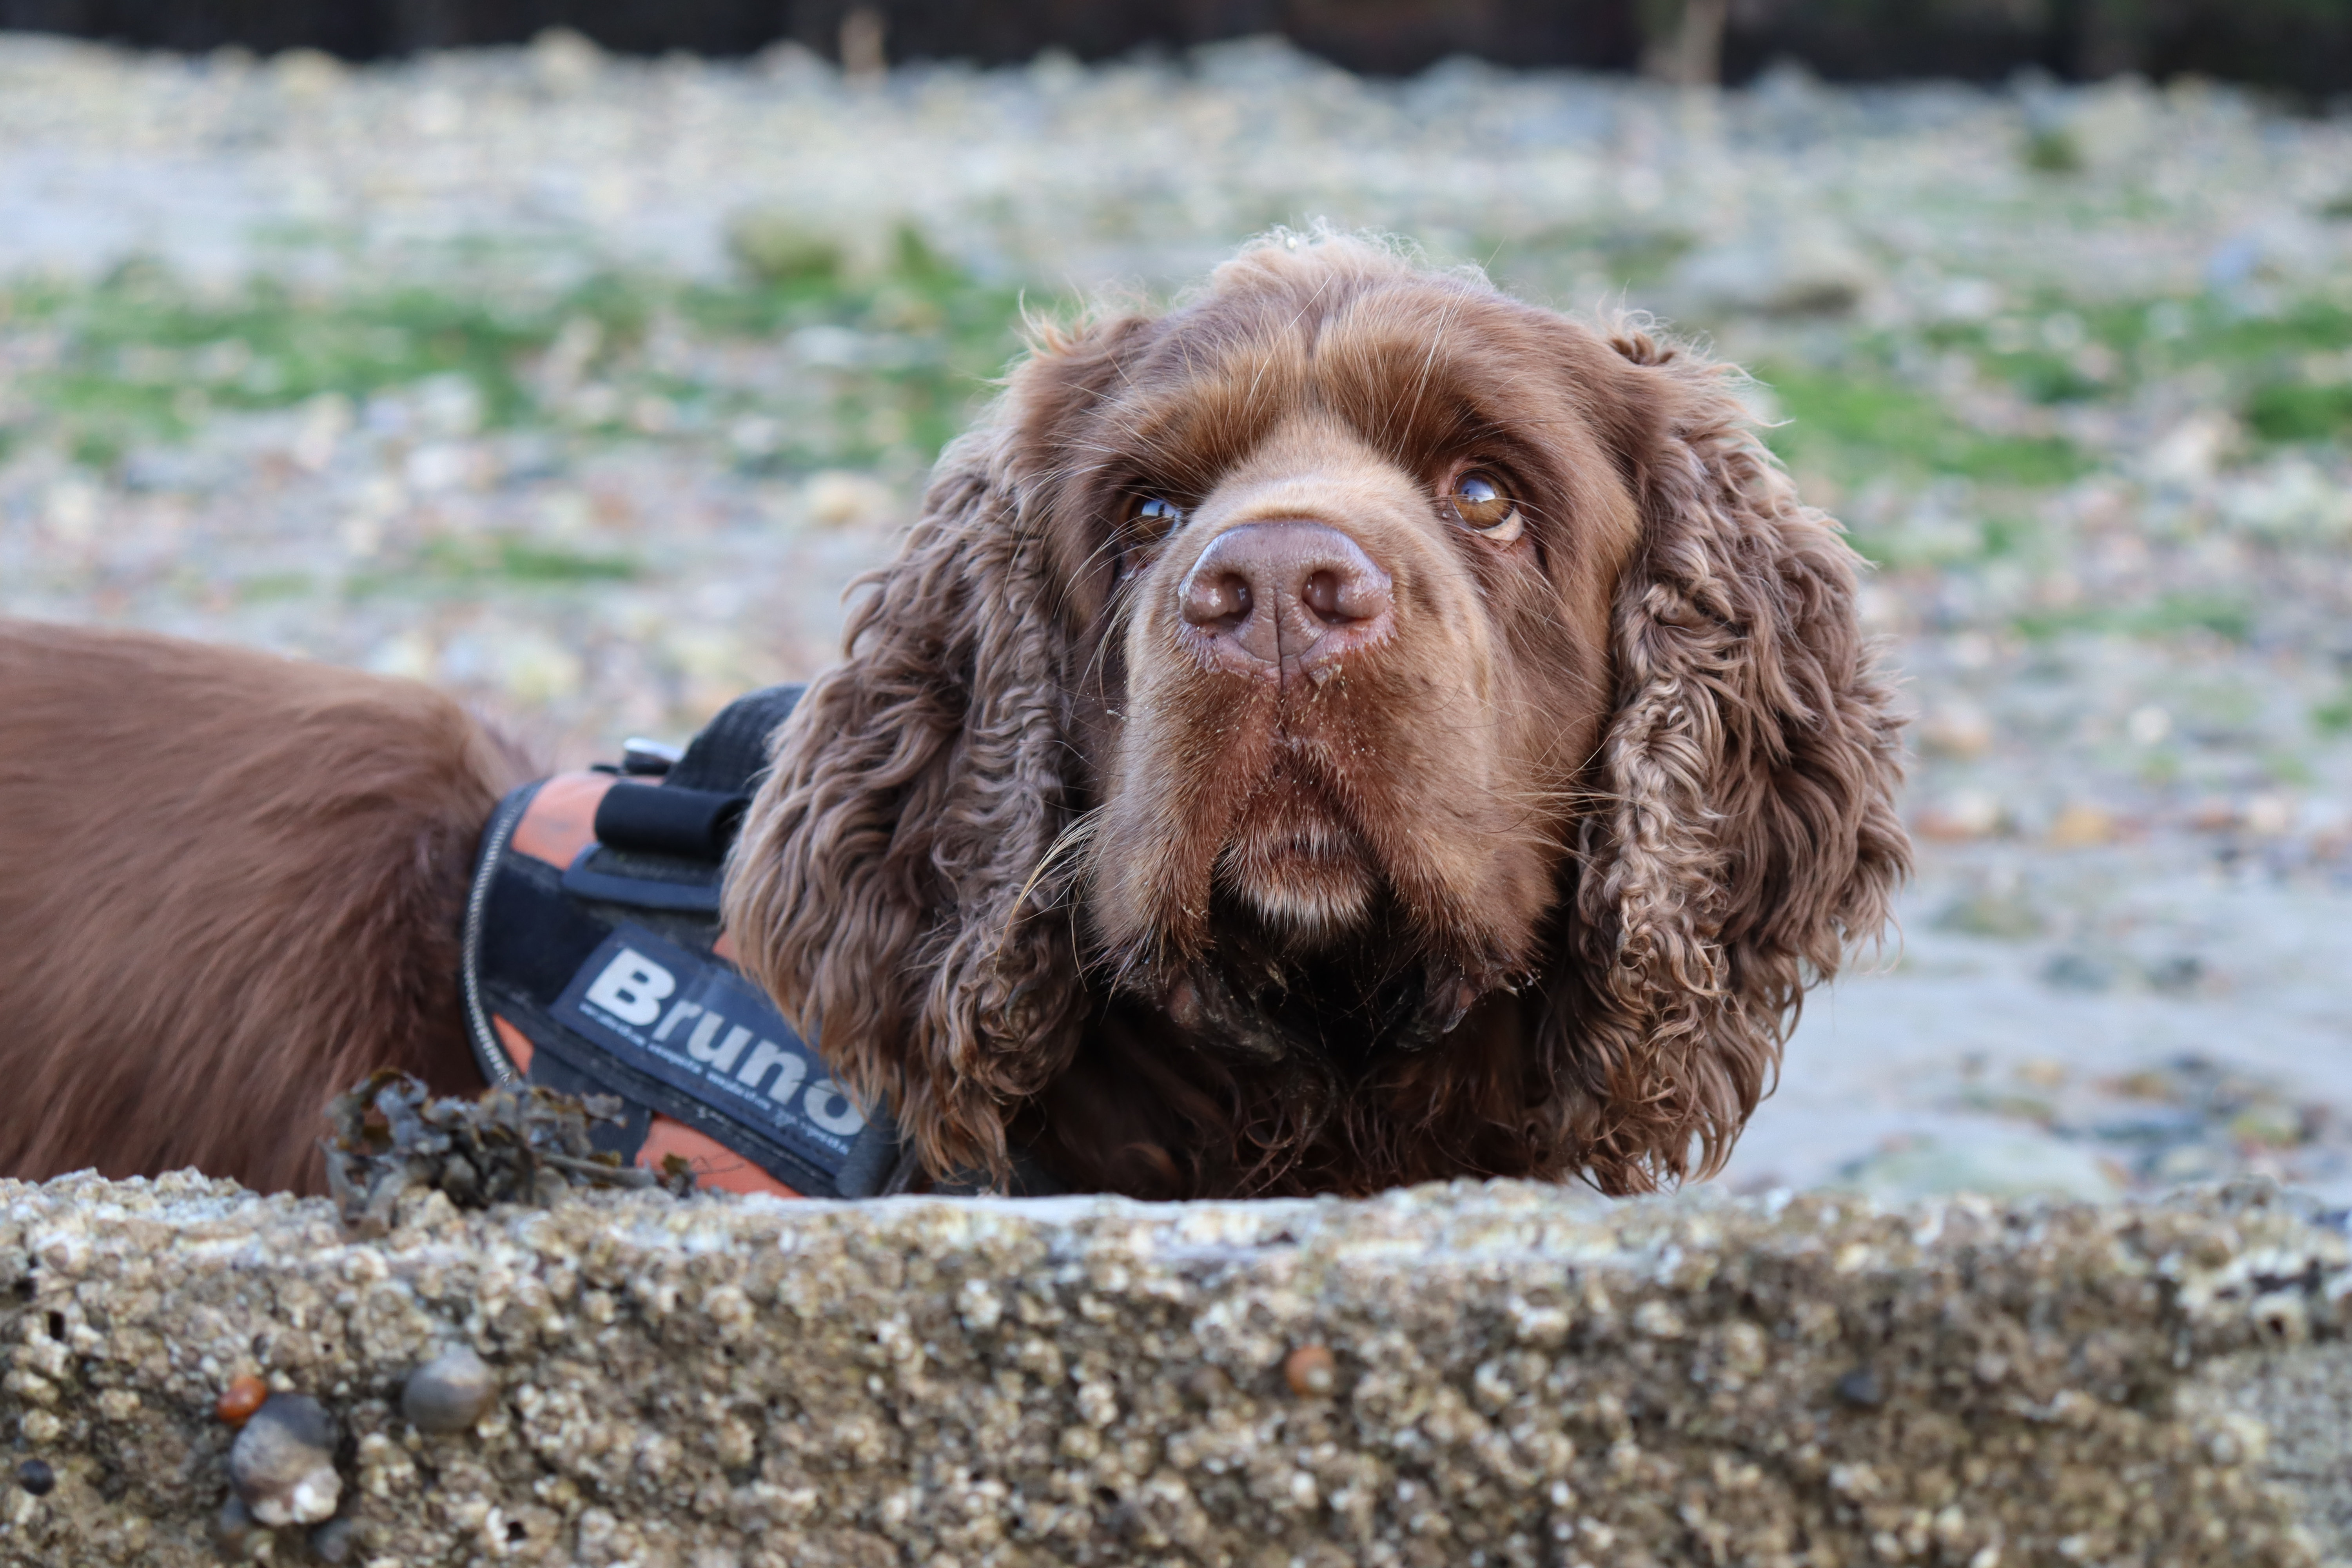 Bruno the Sussex spaniel looking upwards to the top left of the camera, stood behind a shell covered groyne. He's stood side on so the label on his harness with his name on is visible in the photo.